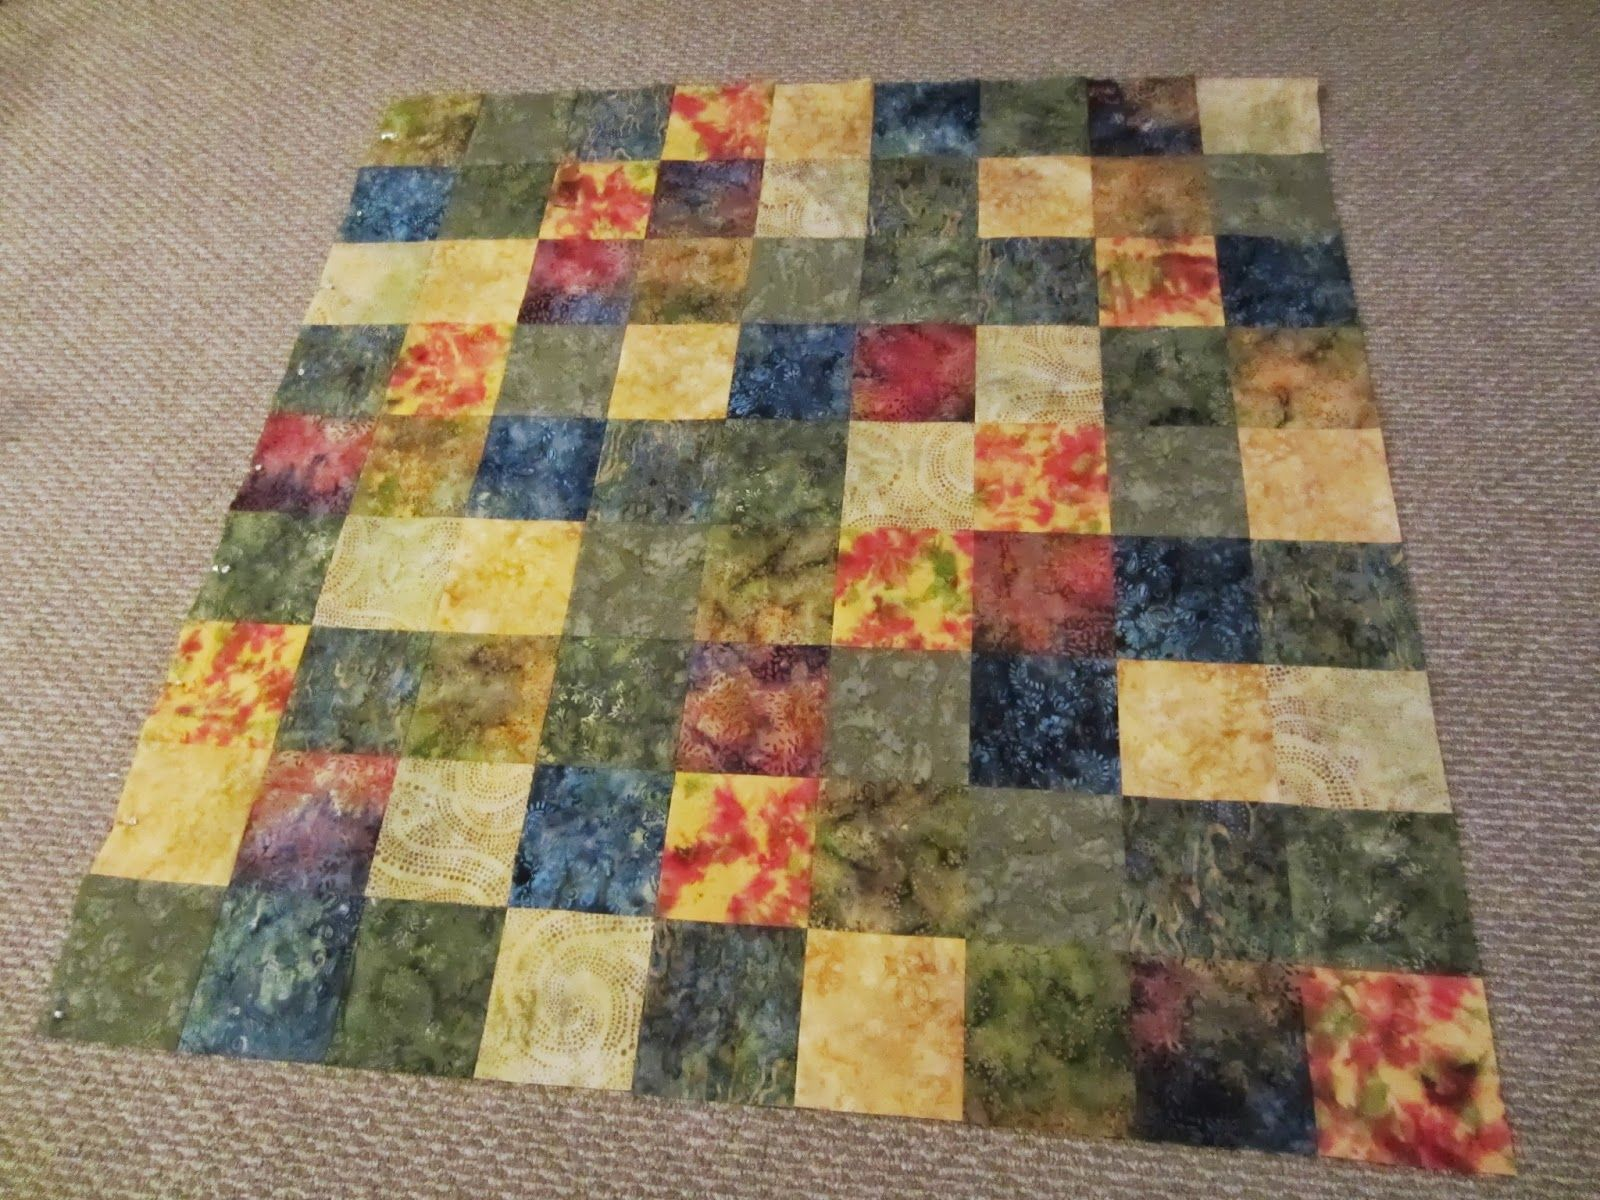 Making a Sudoku quilt - tutorial | Share Today's Craft and DIY ... : sudoku quilt pattern free - Adamdwight.com